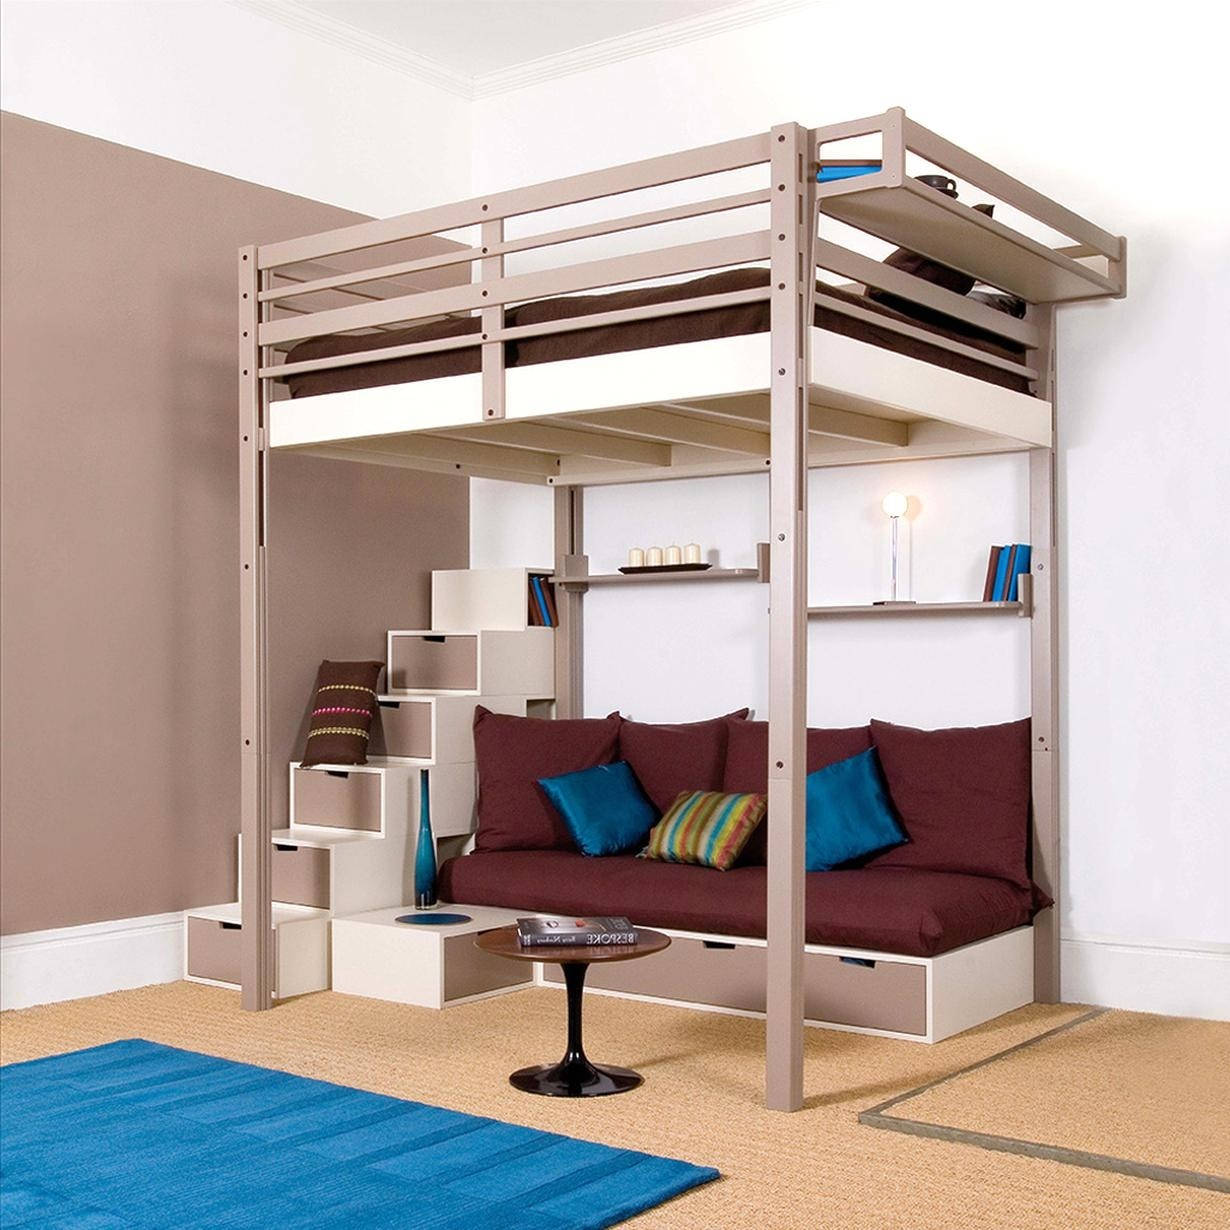 Beau Full Size Loft Bed With Stairs 4